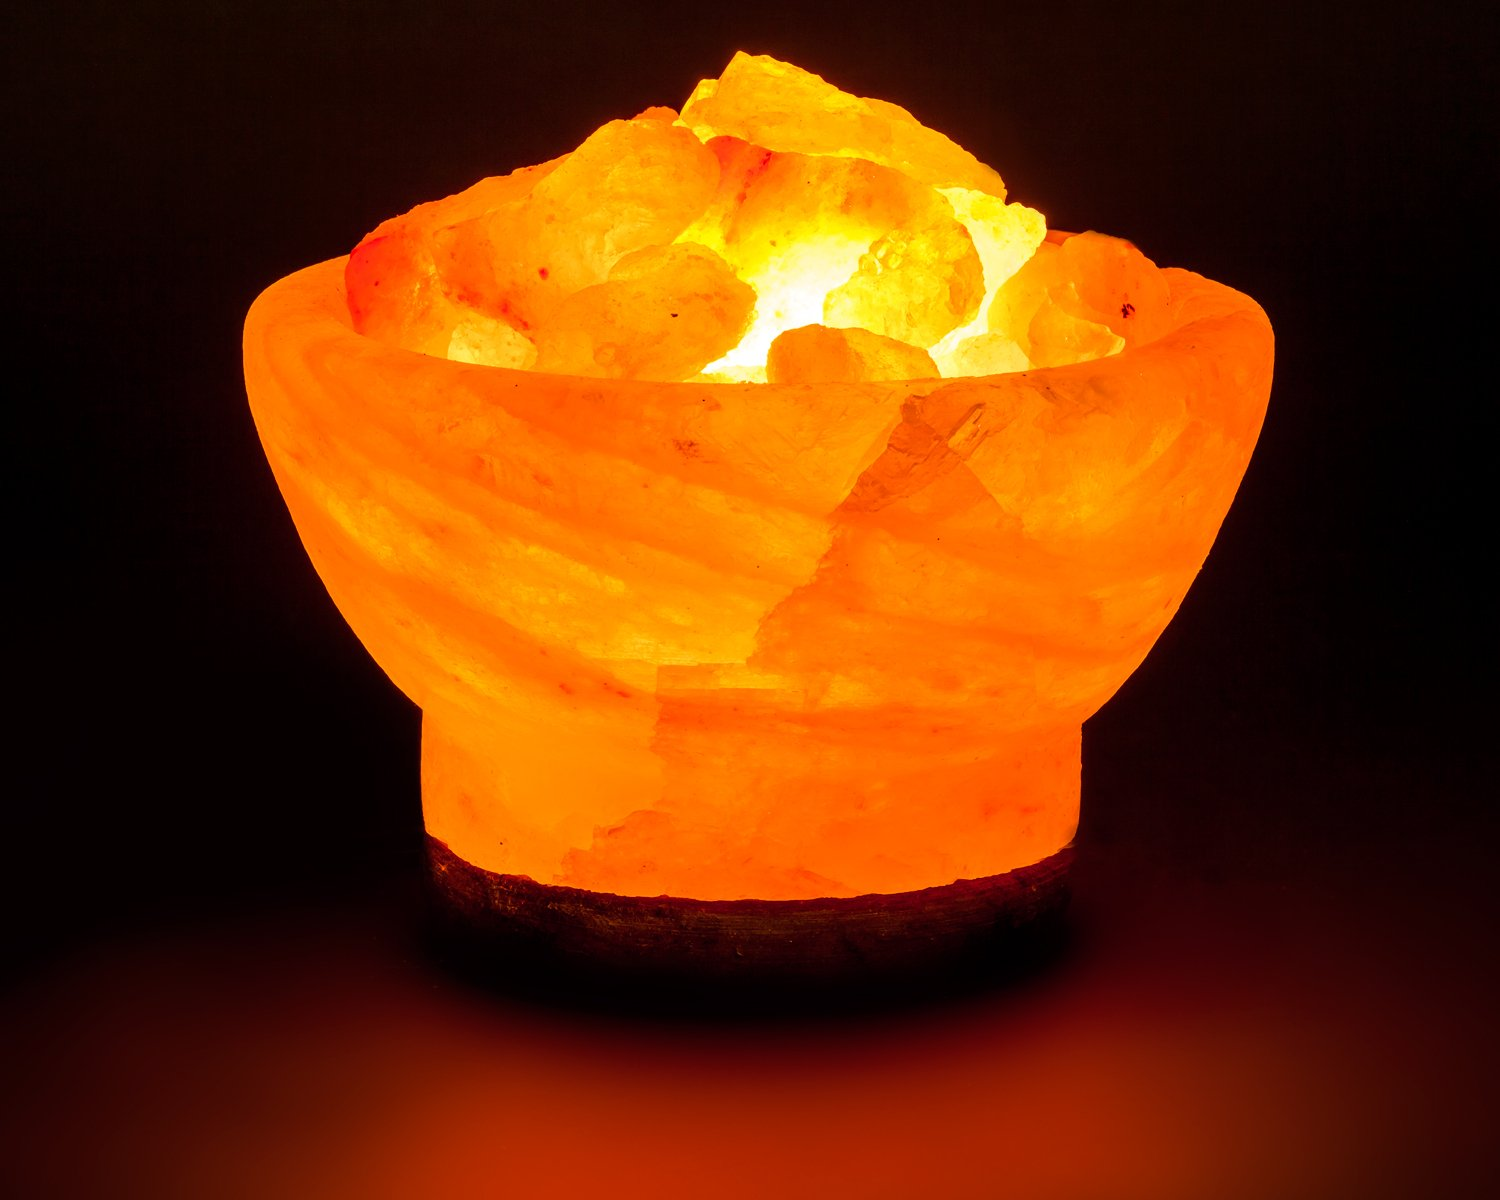 Mockins 6 Hand Crafted Natural Himalayan Salt Lamp Salt Bowl Lamp with Chunks of Himalayan Salt Rocks with a Beautiful Wooden Base and Light Bulb